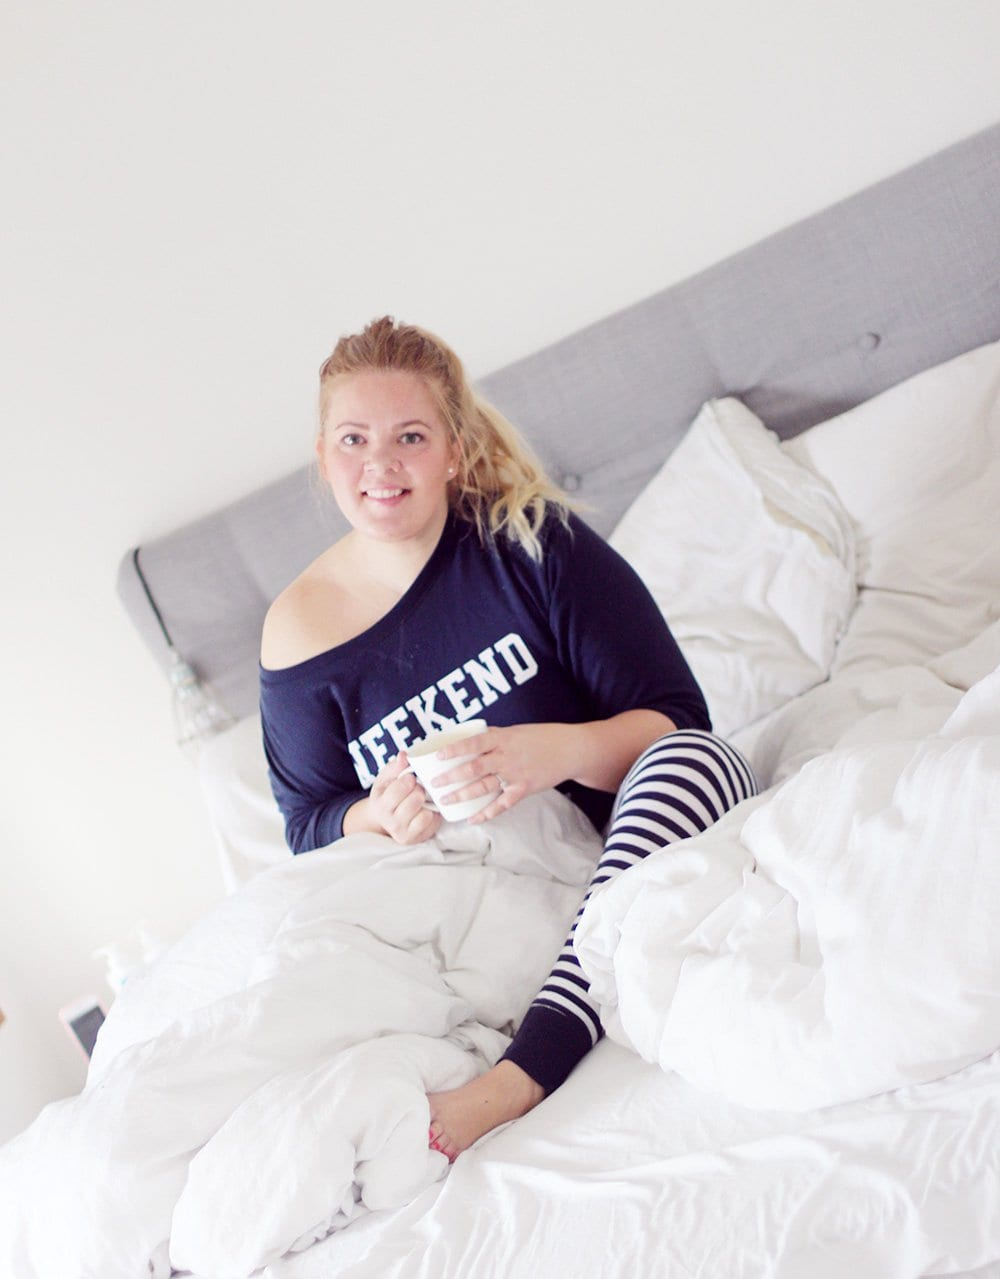 WEEKEND - ny pyjamas-favorit og rabatkode til H&M..